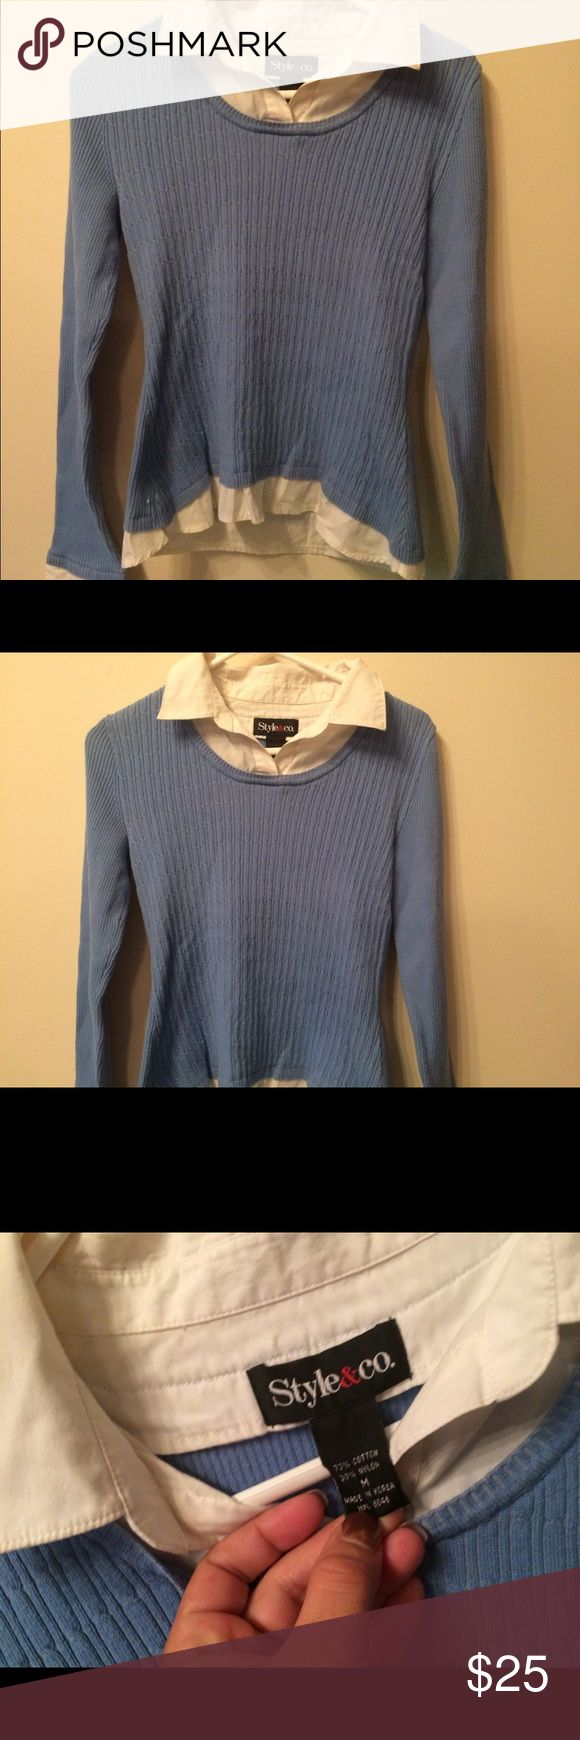 NwO Style&Co Preppy M w/collar&folding sleeves Style&Co Preppy SzM w/collar&folding sleeves NWOT perfect find gorgeous shirt & PERFECT No flaws noted!!  HOLIDAY GIFT Style & Co Sweaters